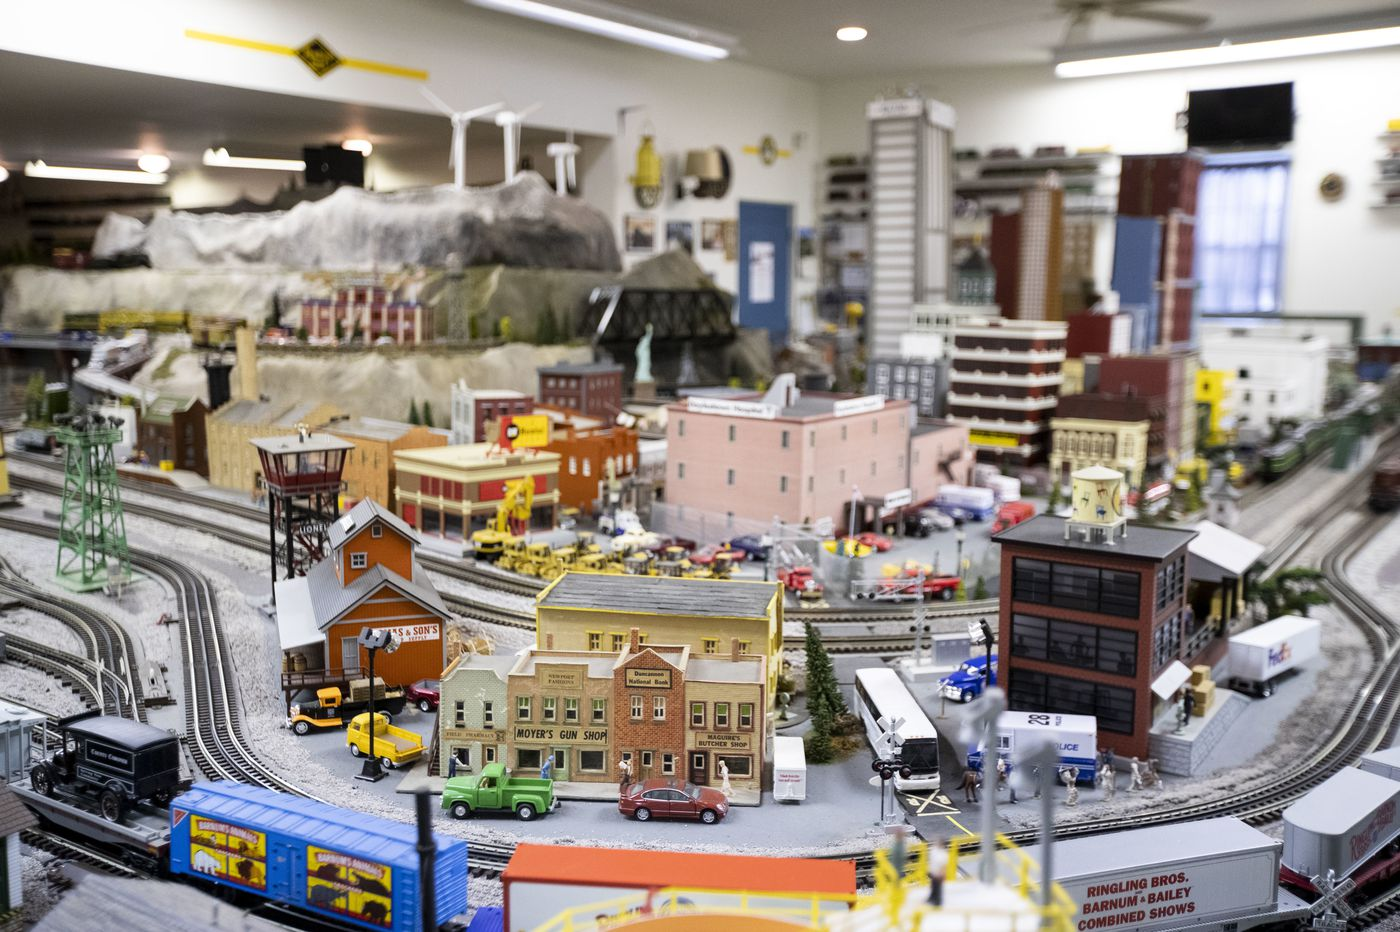 How a model train hobby sets a theme for Chalfont house